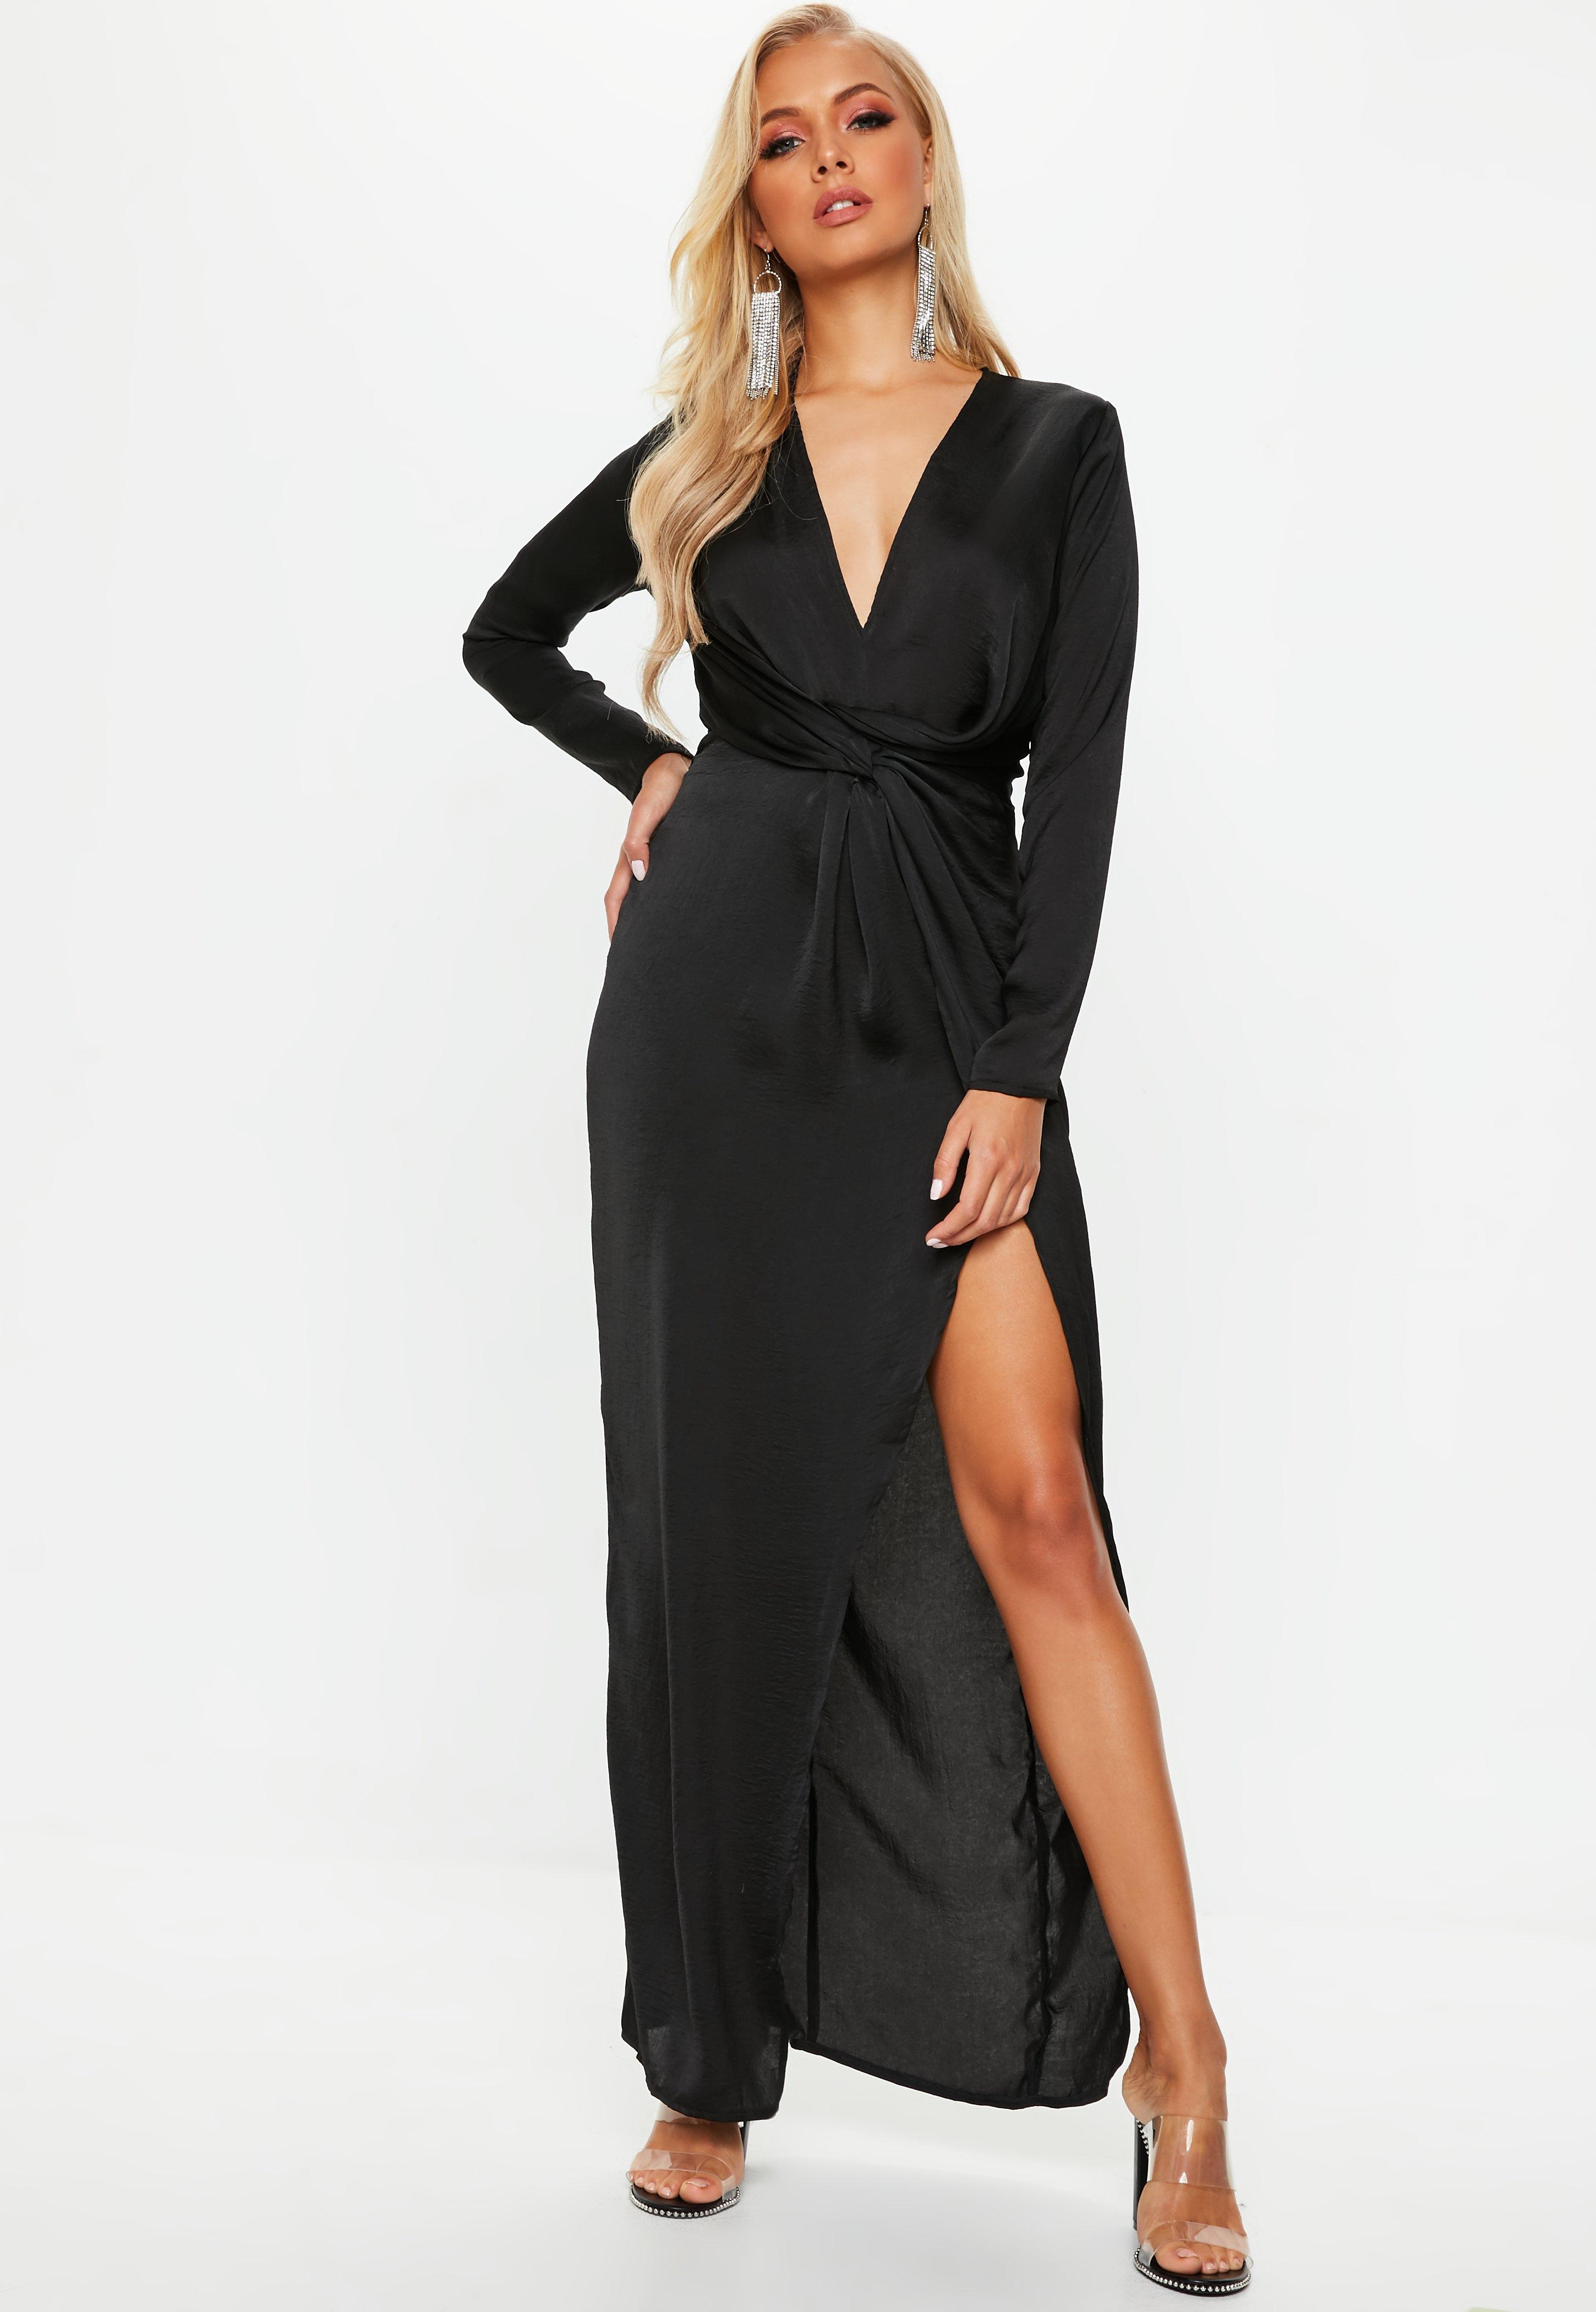 Christmas Dresses | Xmas Party Dresses - Missguided